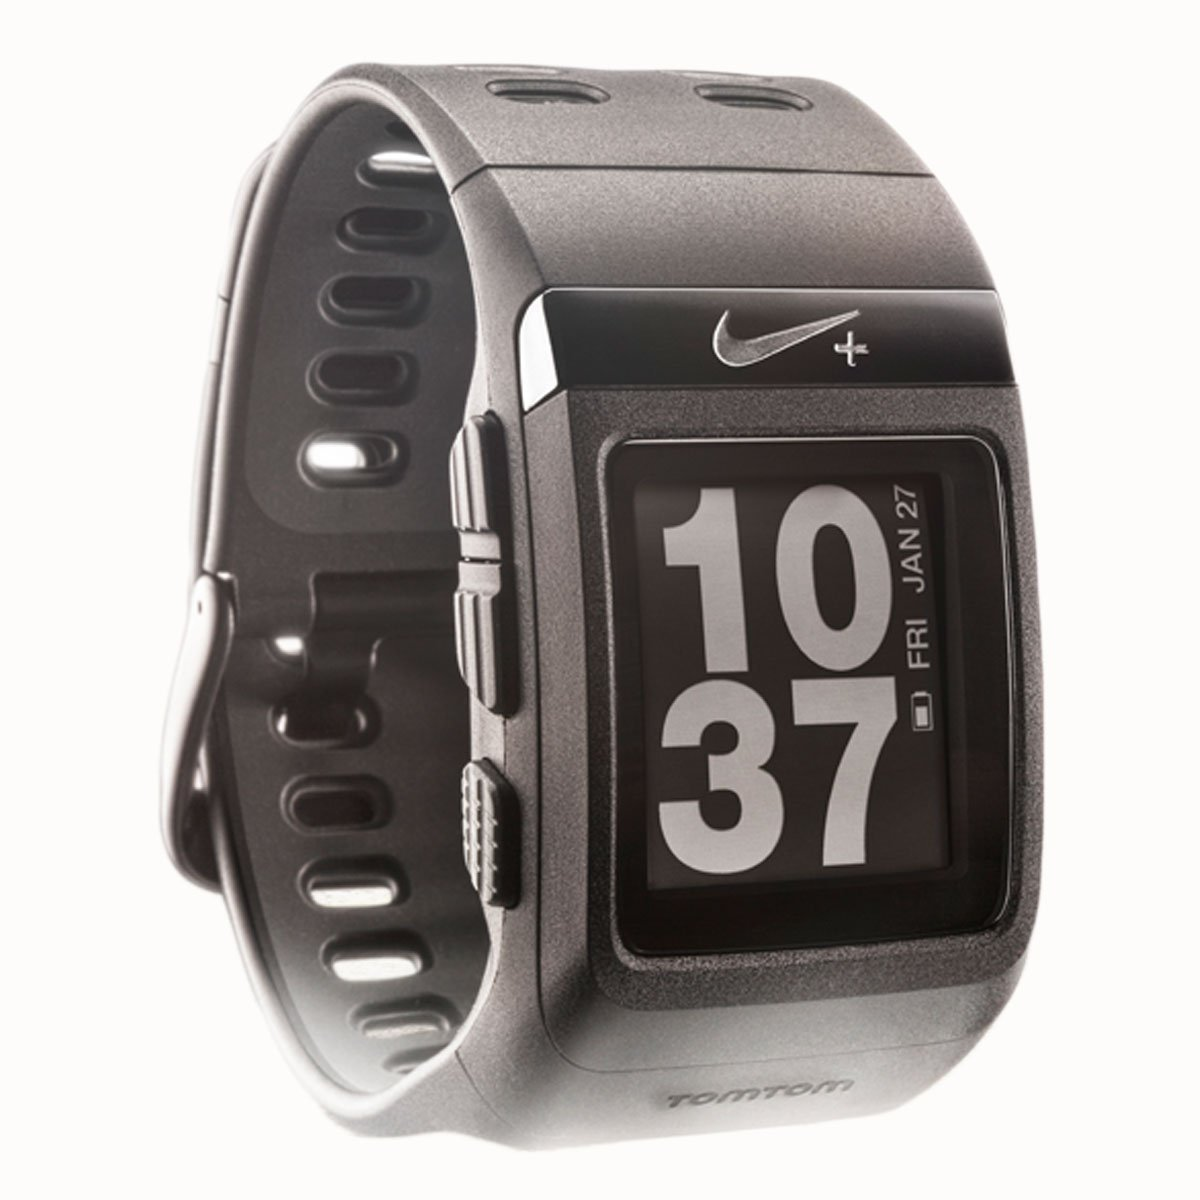 Nike Sensor | Nike Running Watch Amazon | Where to Buy Nike Plus Sensor